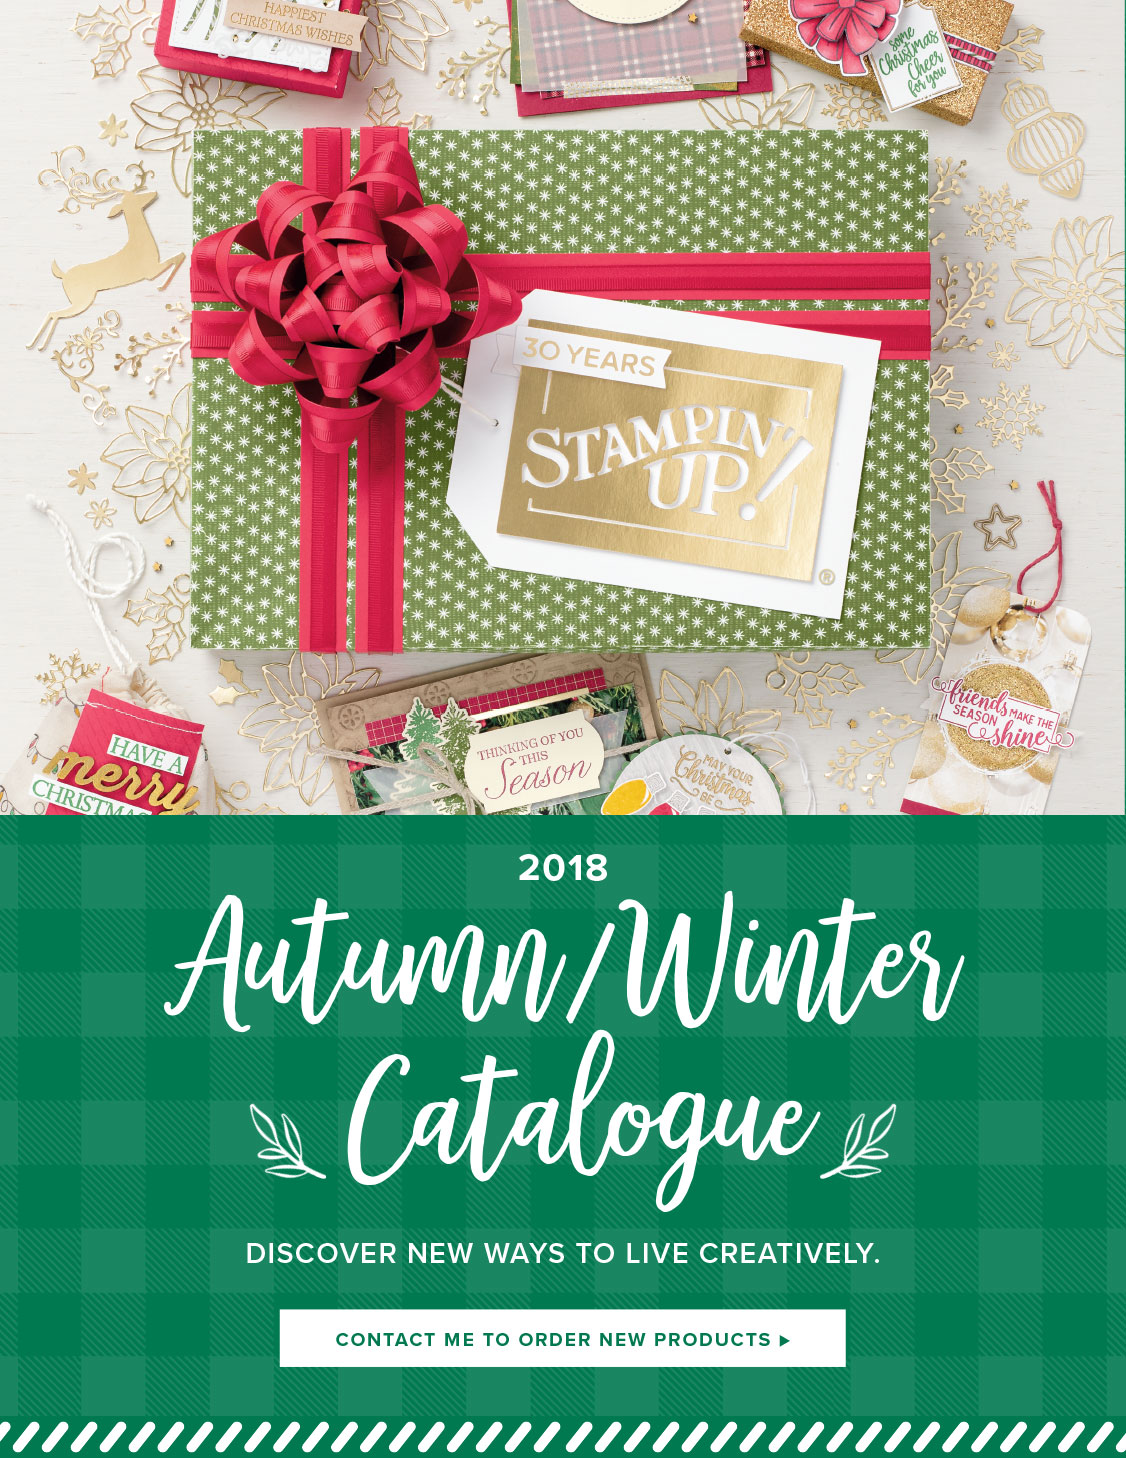 Stampin'Up! Herfst-/Wintercatalogus 2018